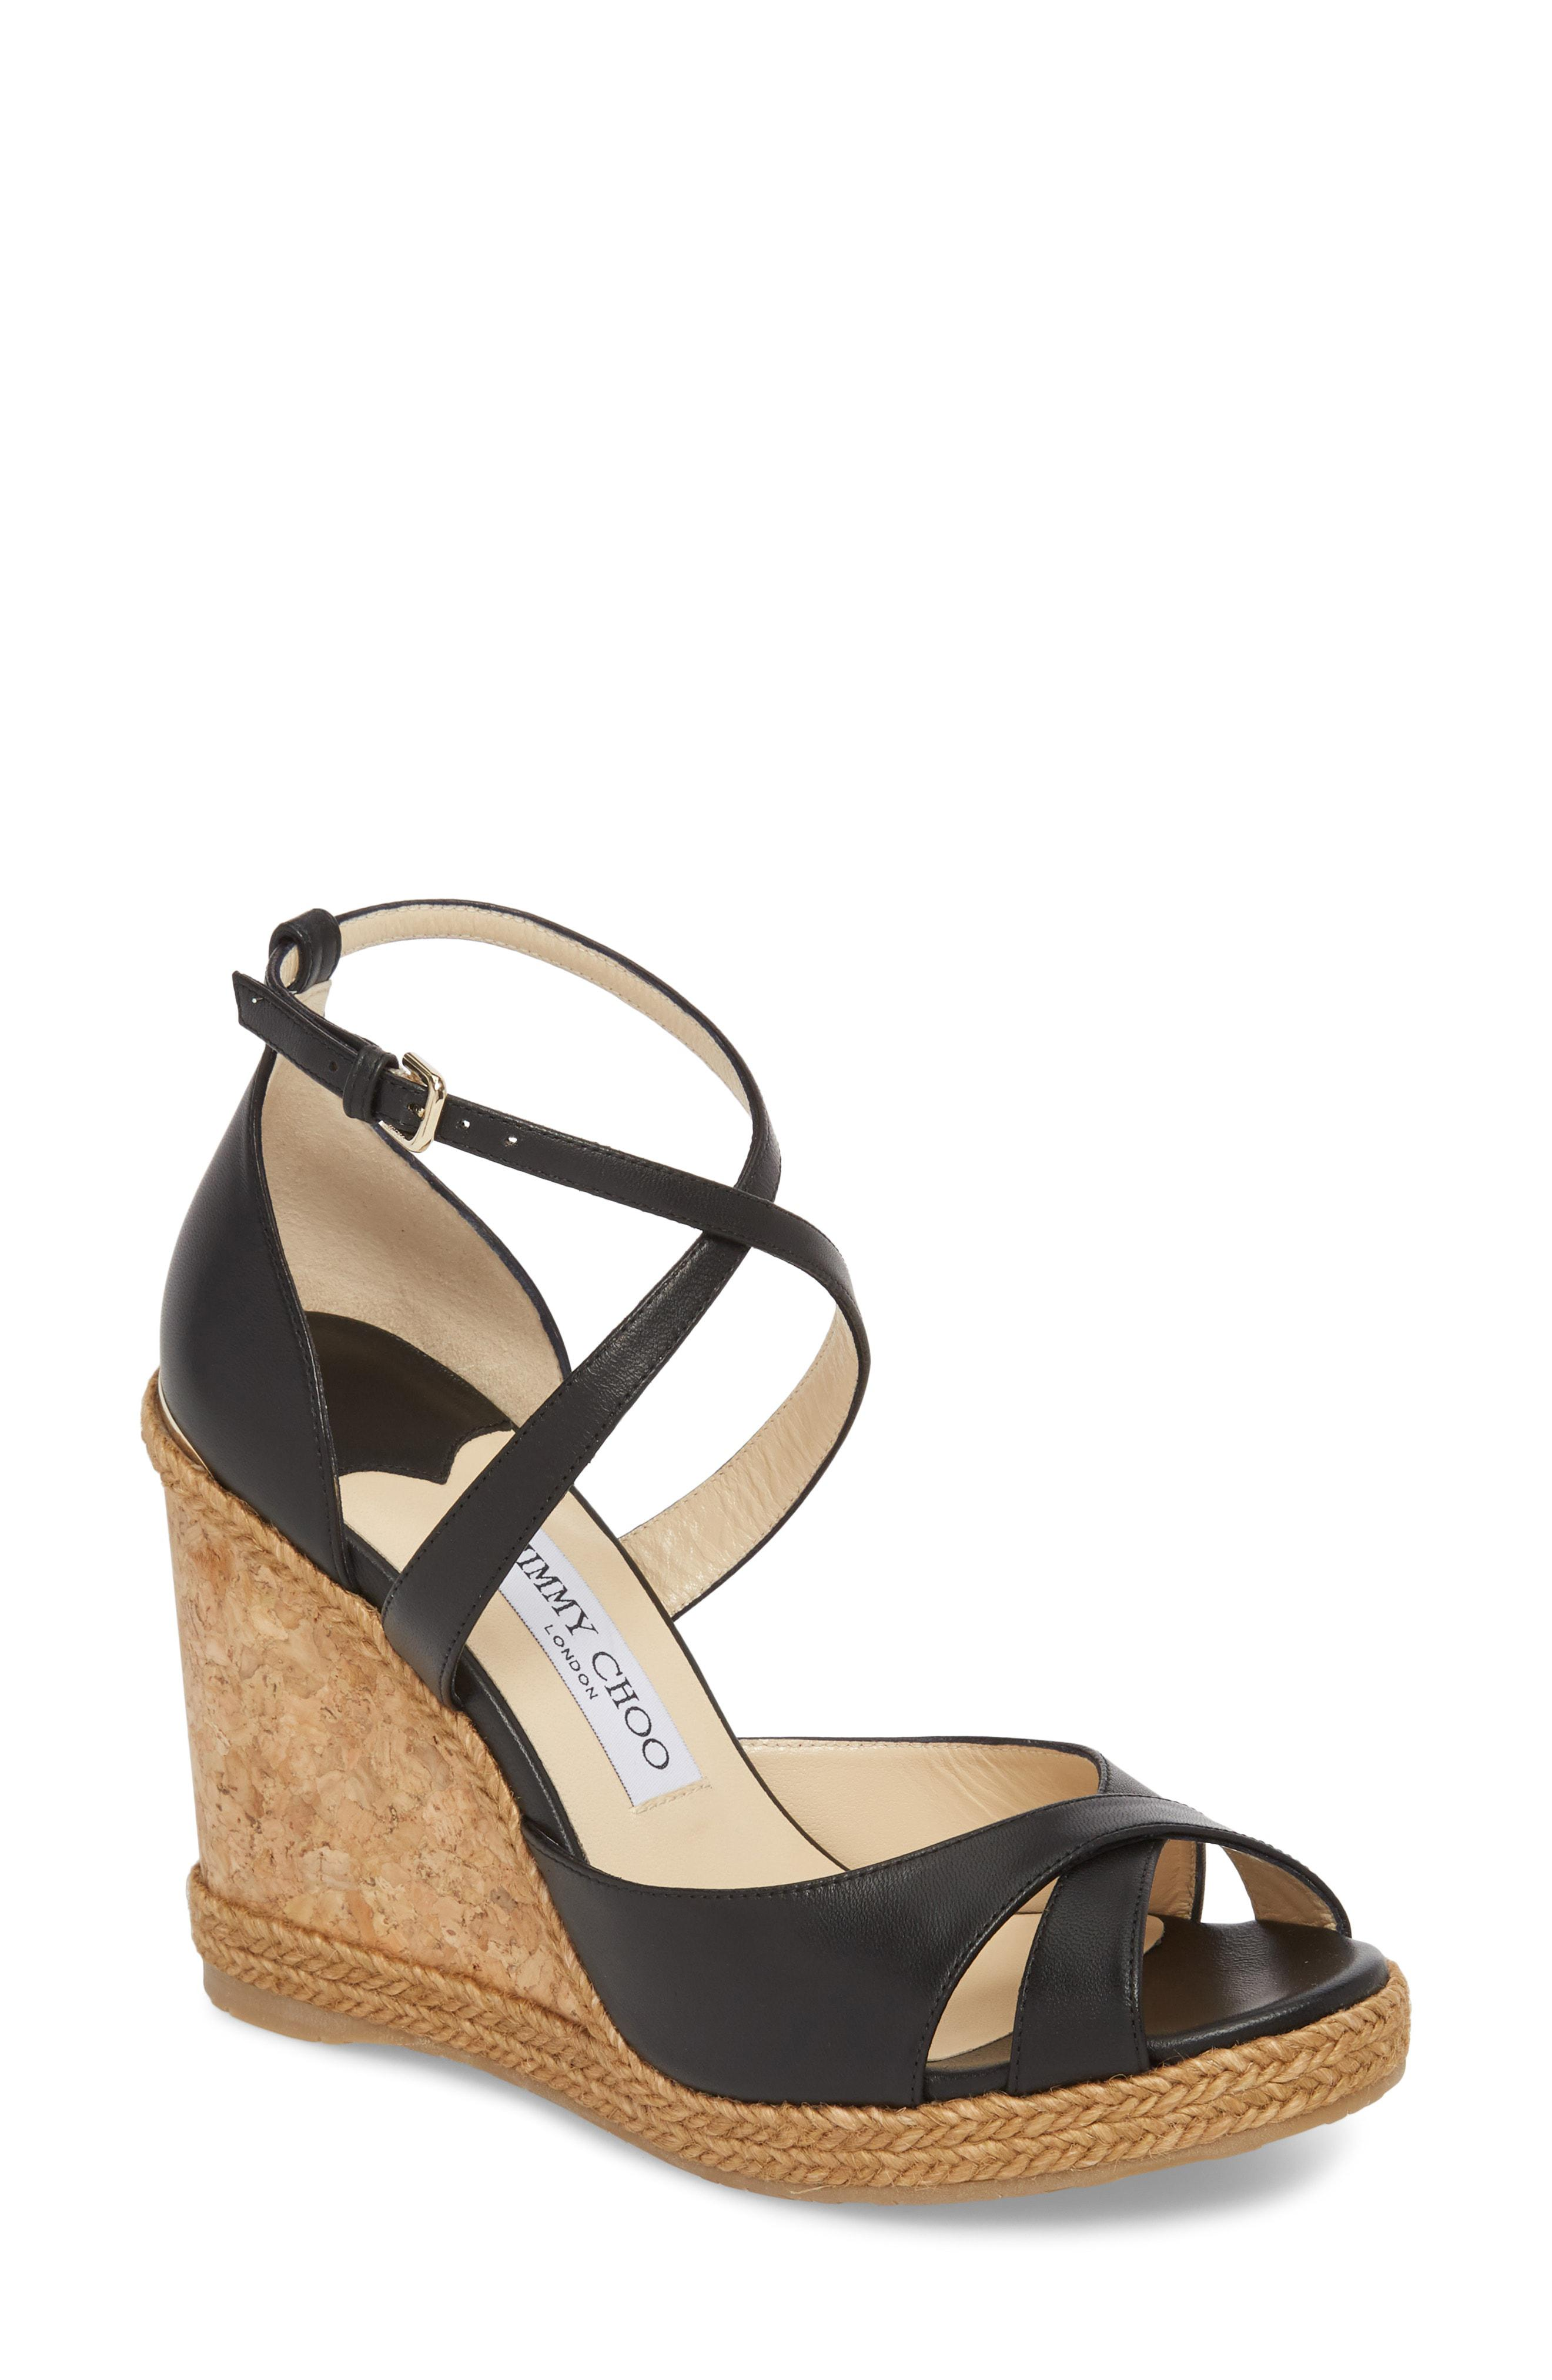 dc72d6dab41 Lyst - Jimmy Choo Alanah Espadrille Wedge Sandal in Black